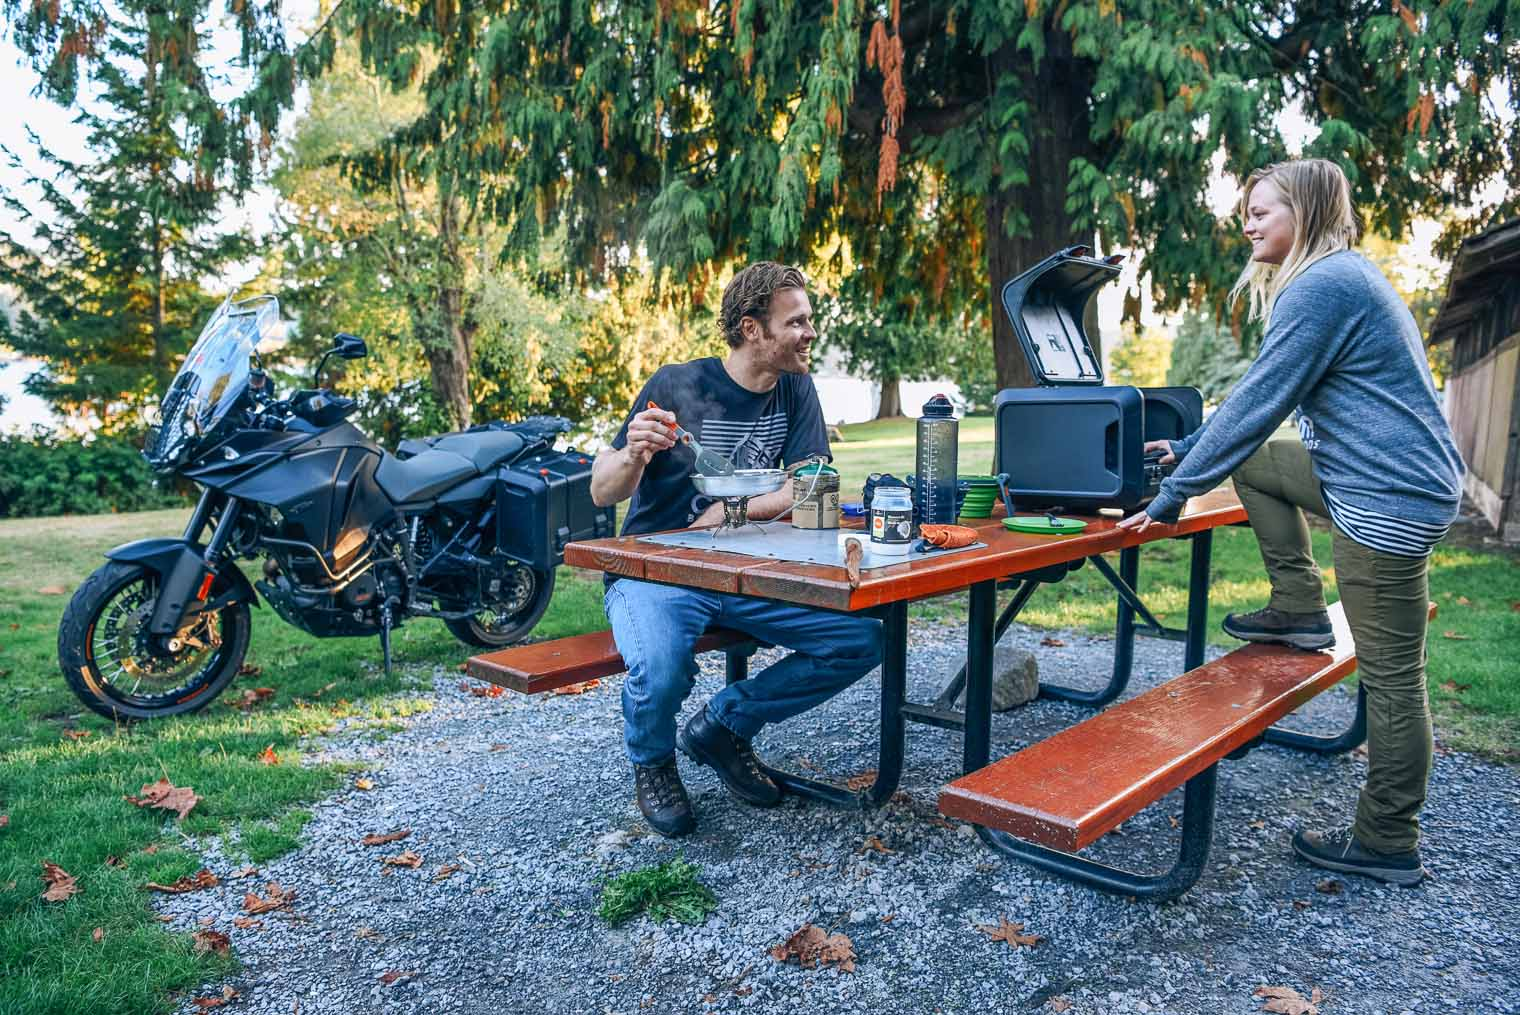 A guide to the best compact kitchen gear for motorcycle camping and touring.